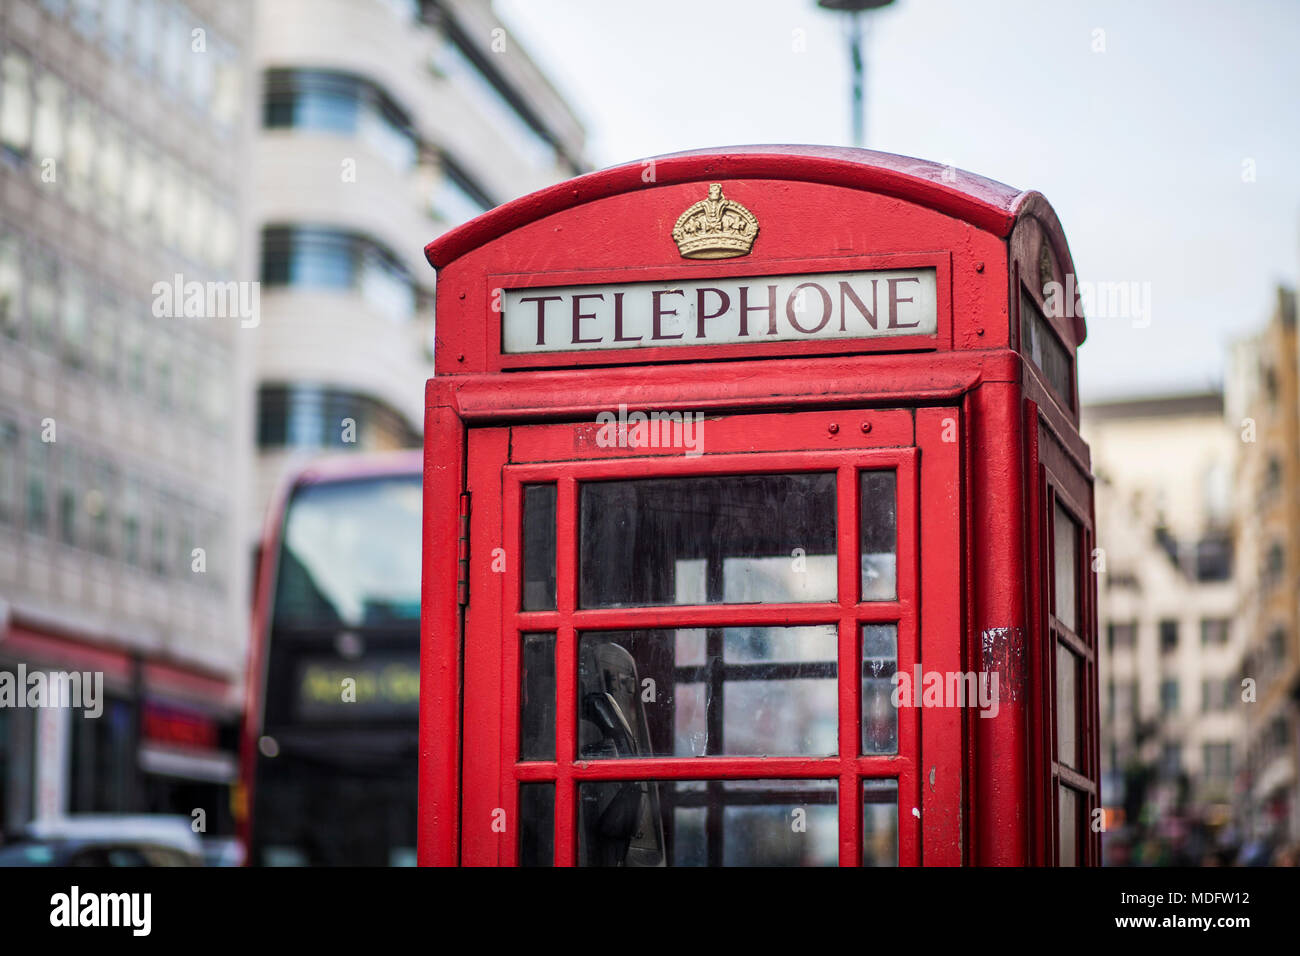 Traditional Red telephone box on a street in London, UK - Stock Image